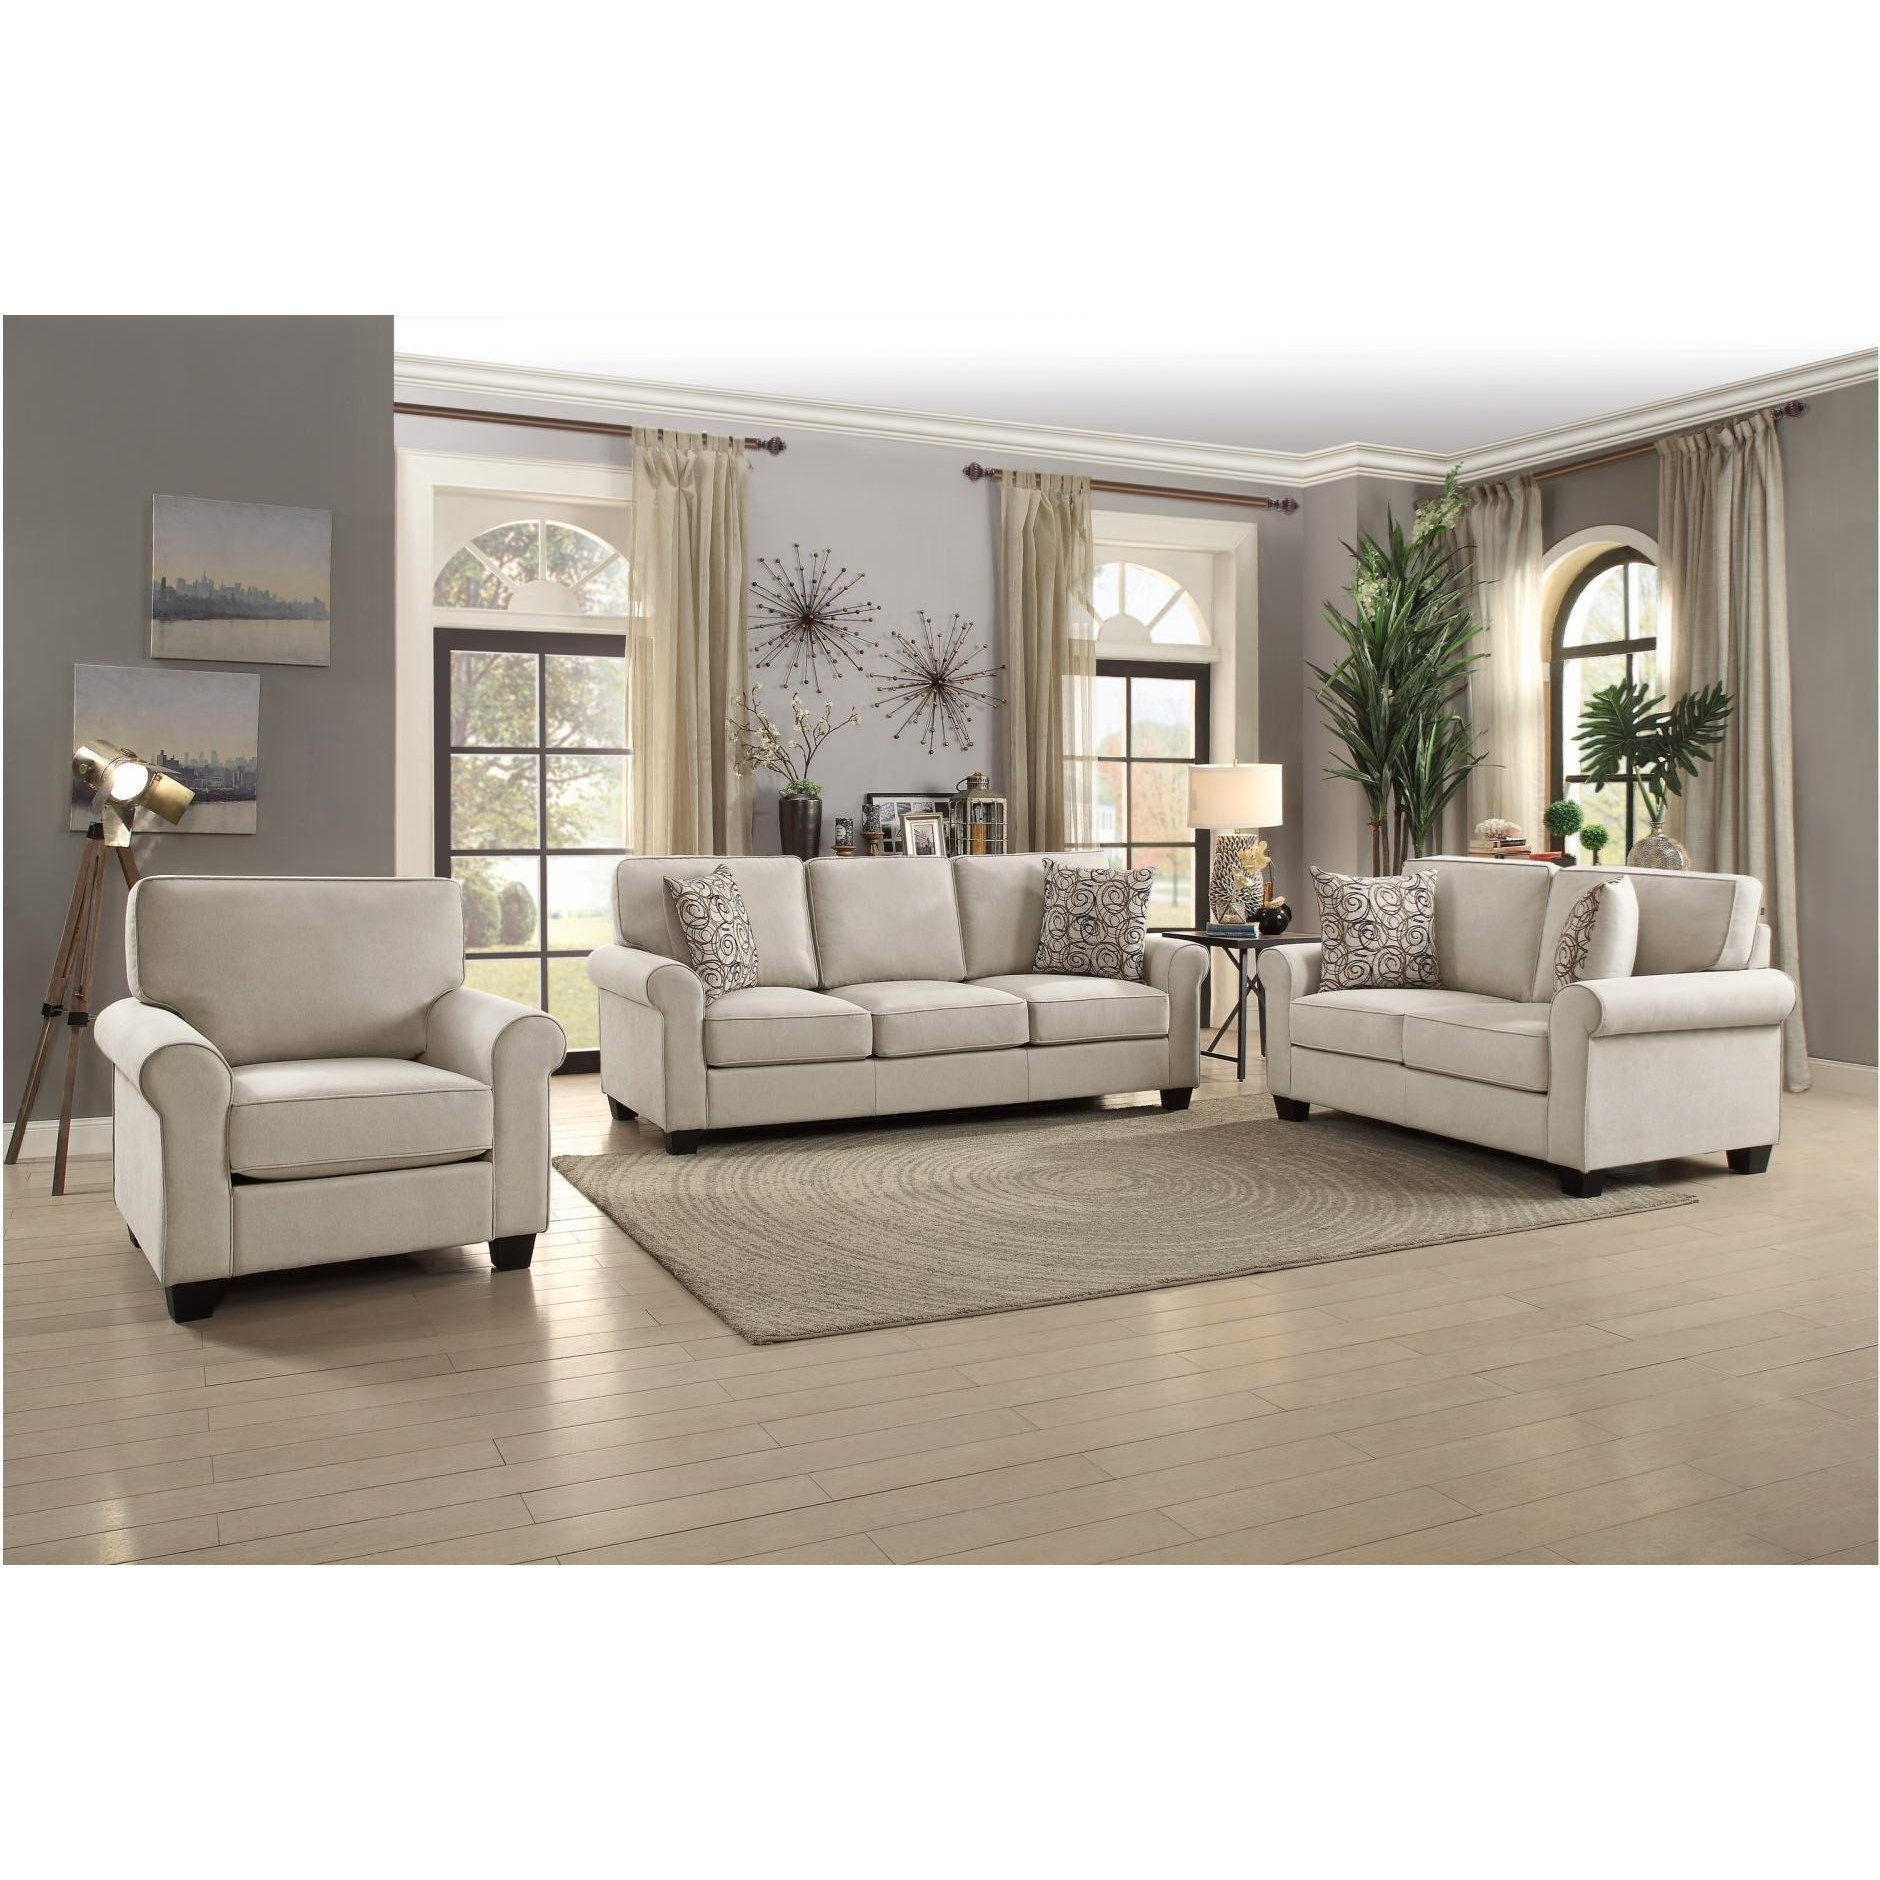 Selkirk Living Room Group by Homelegance at Simply Home by Lindy's